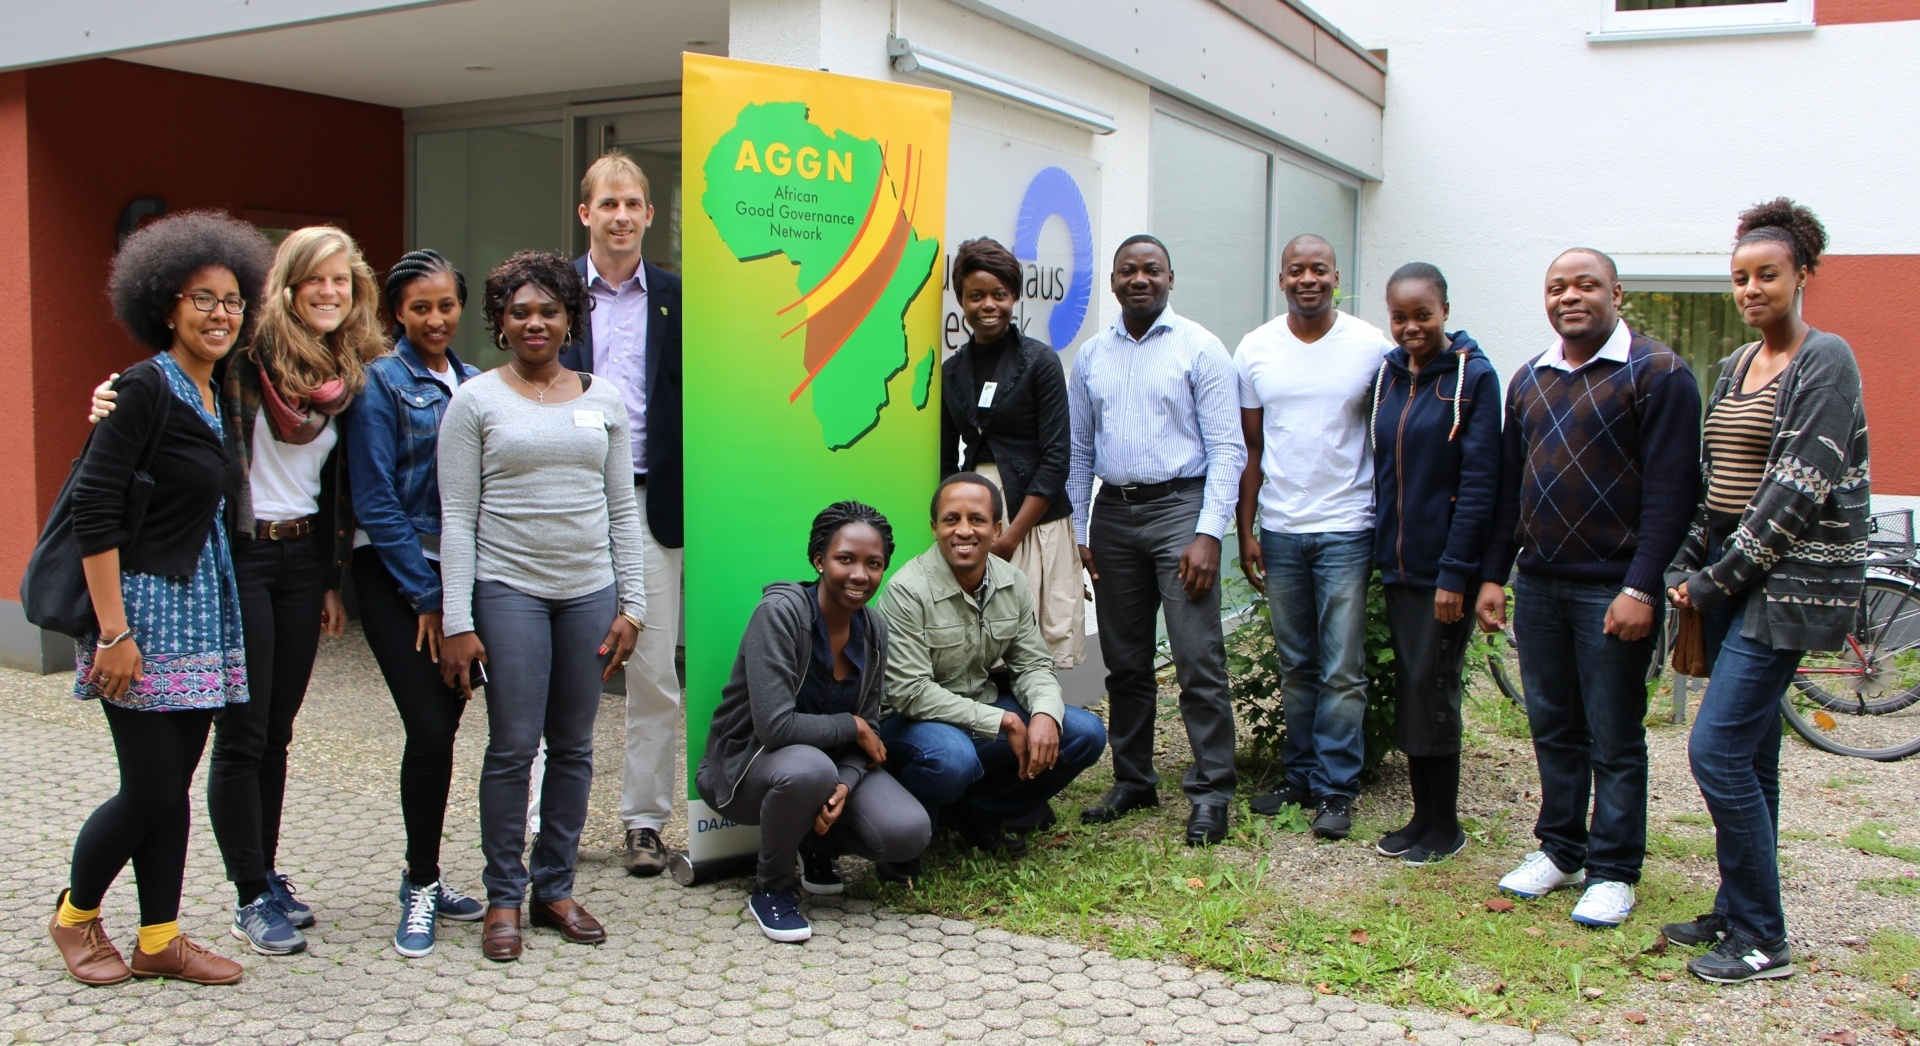 The participating AGGN fellows